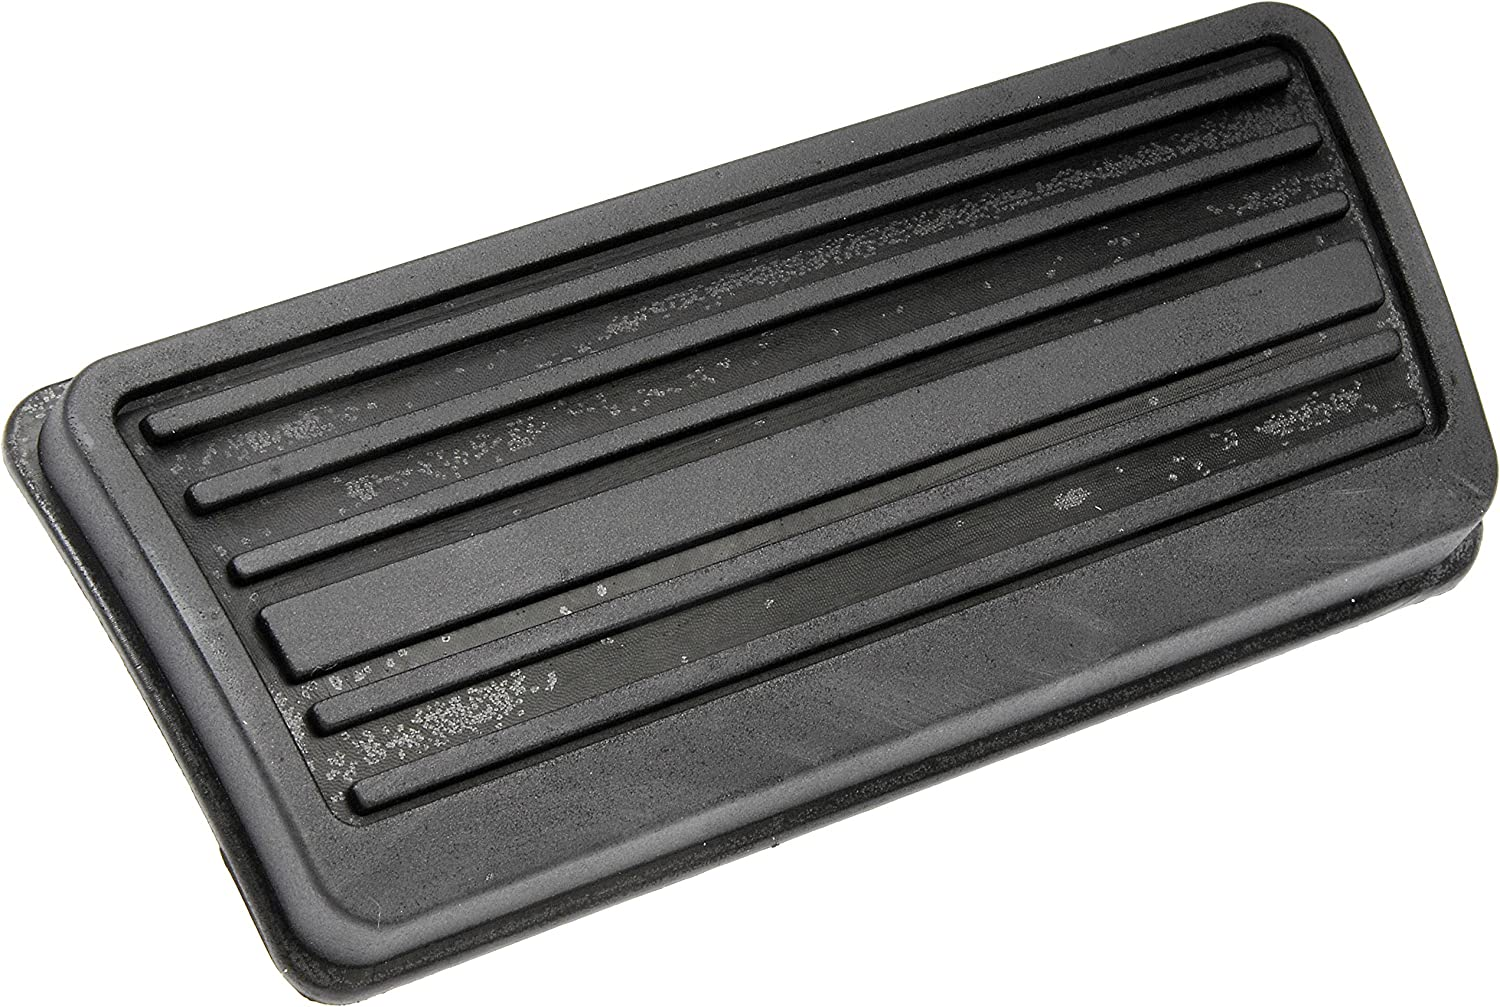 Dorman Brake Pedal Pad Cover for Escalade Chevy GMC Van Pickup Truck New